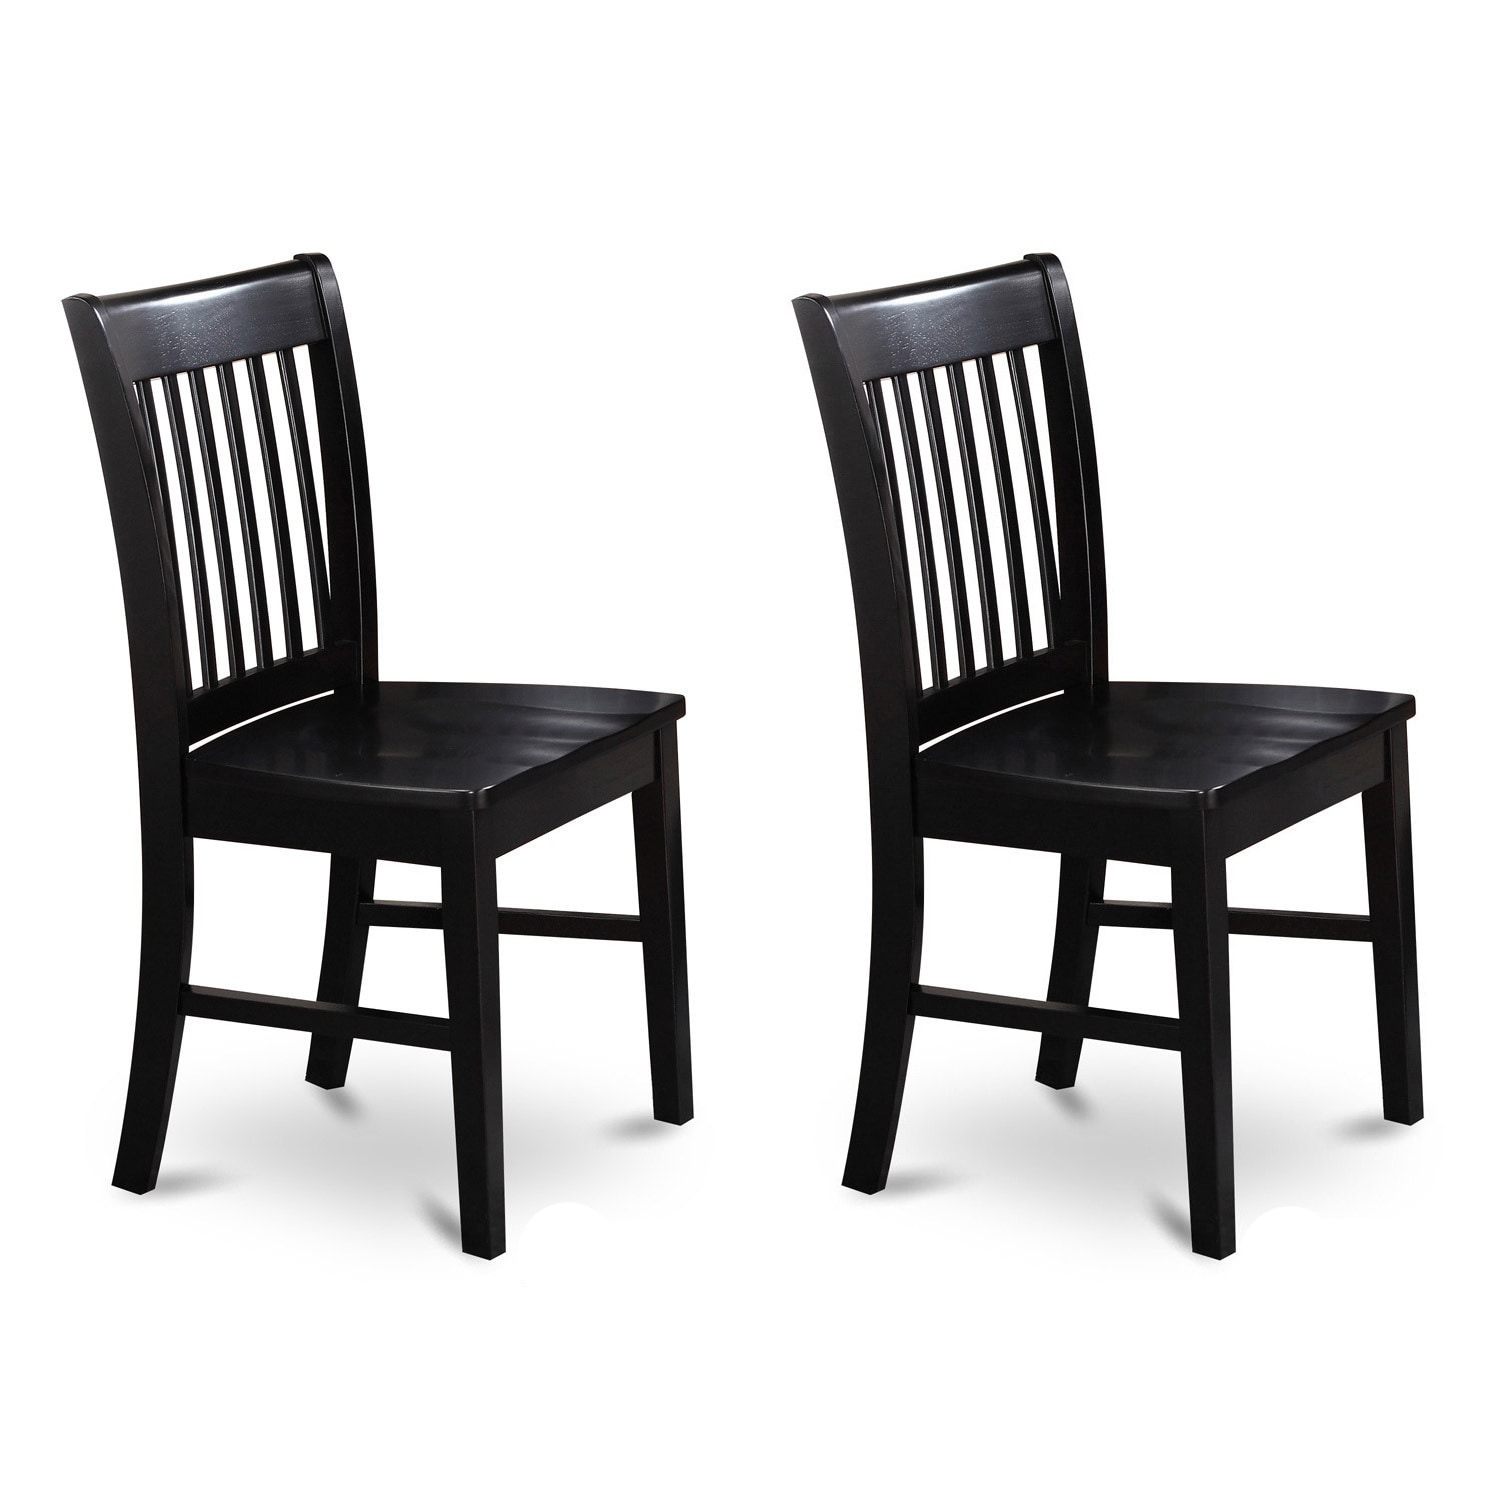 Shop copper grove cronewood black wooden seat dining chair set of 2 free shipping today overstock com 20460876